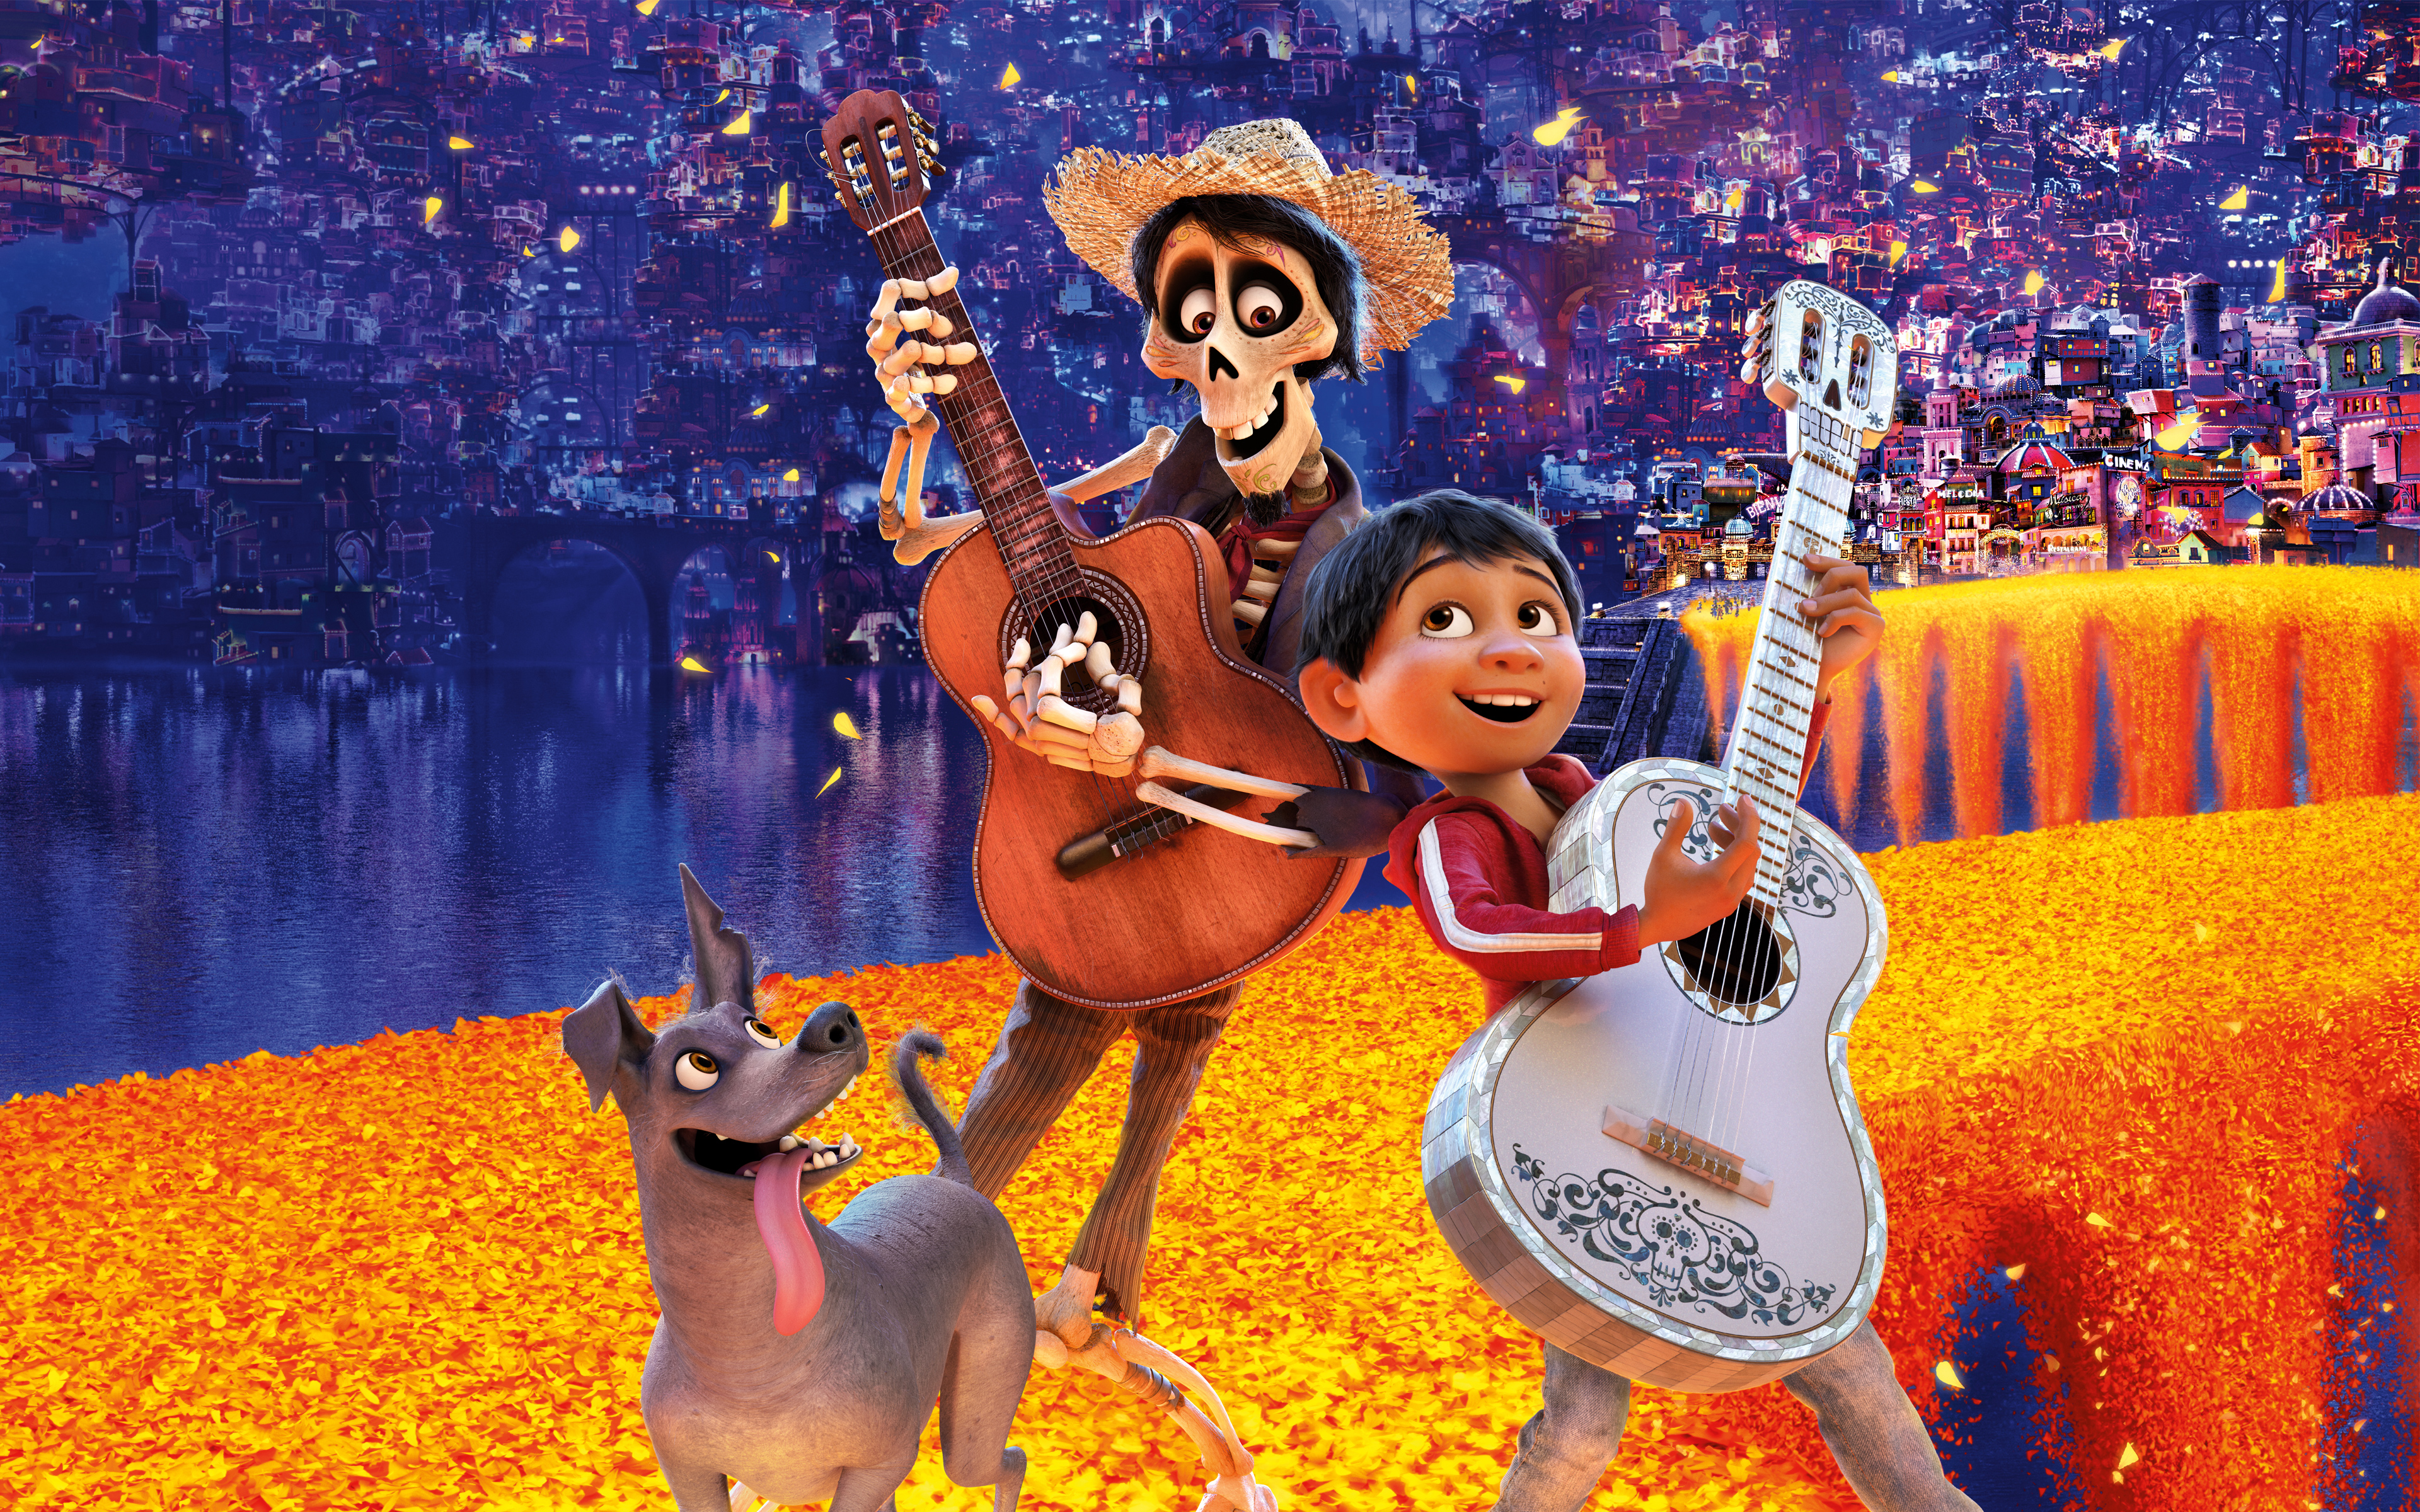 Coco Animation Movie 4K 8K